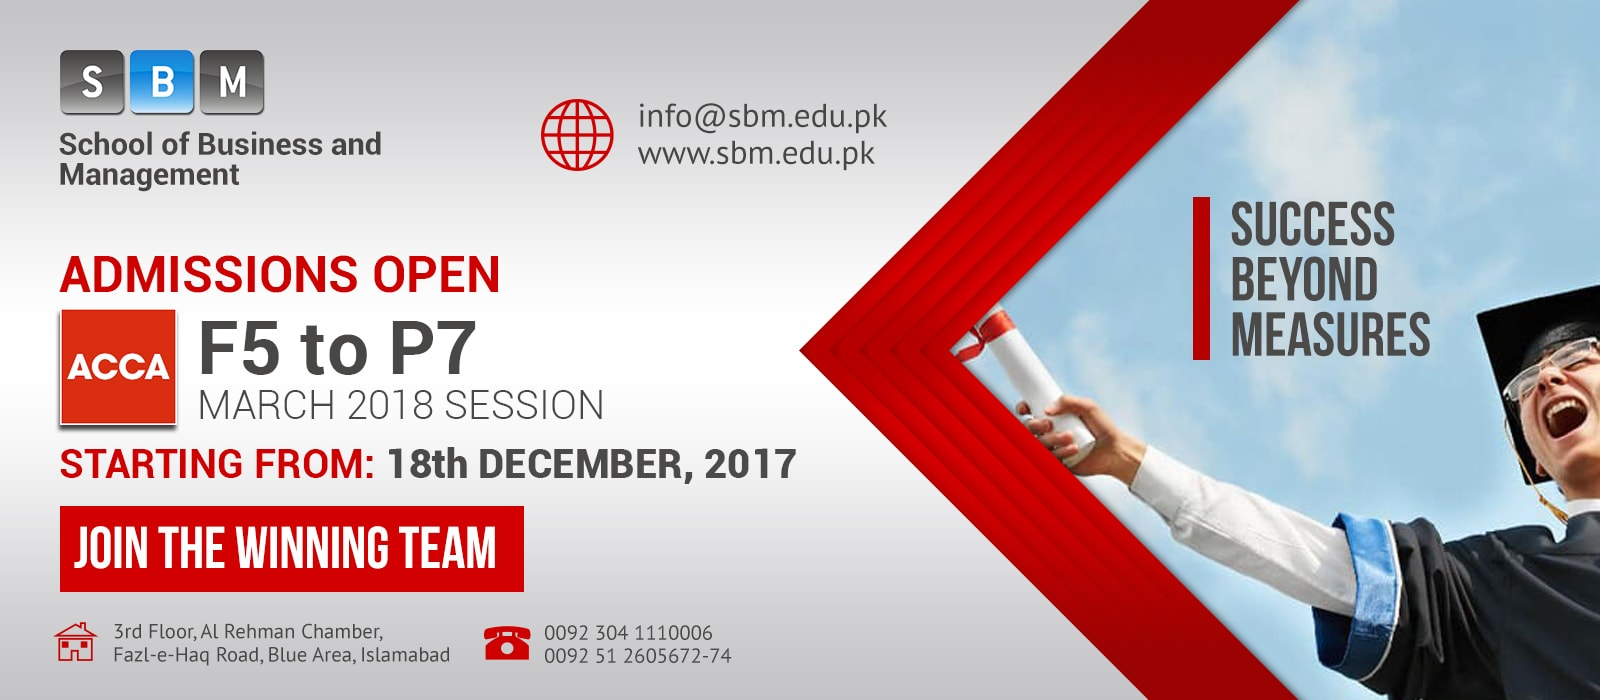 Admissions are open in ACCA from F5 to P7 for March 2018